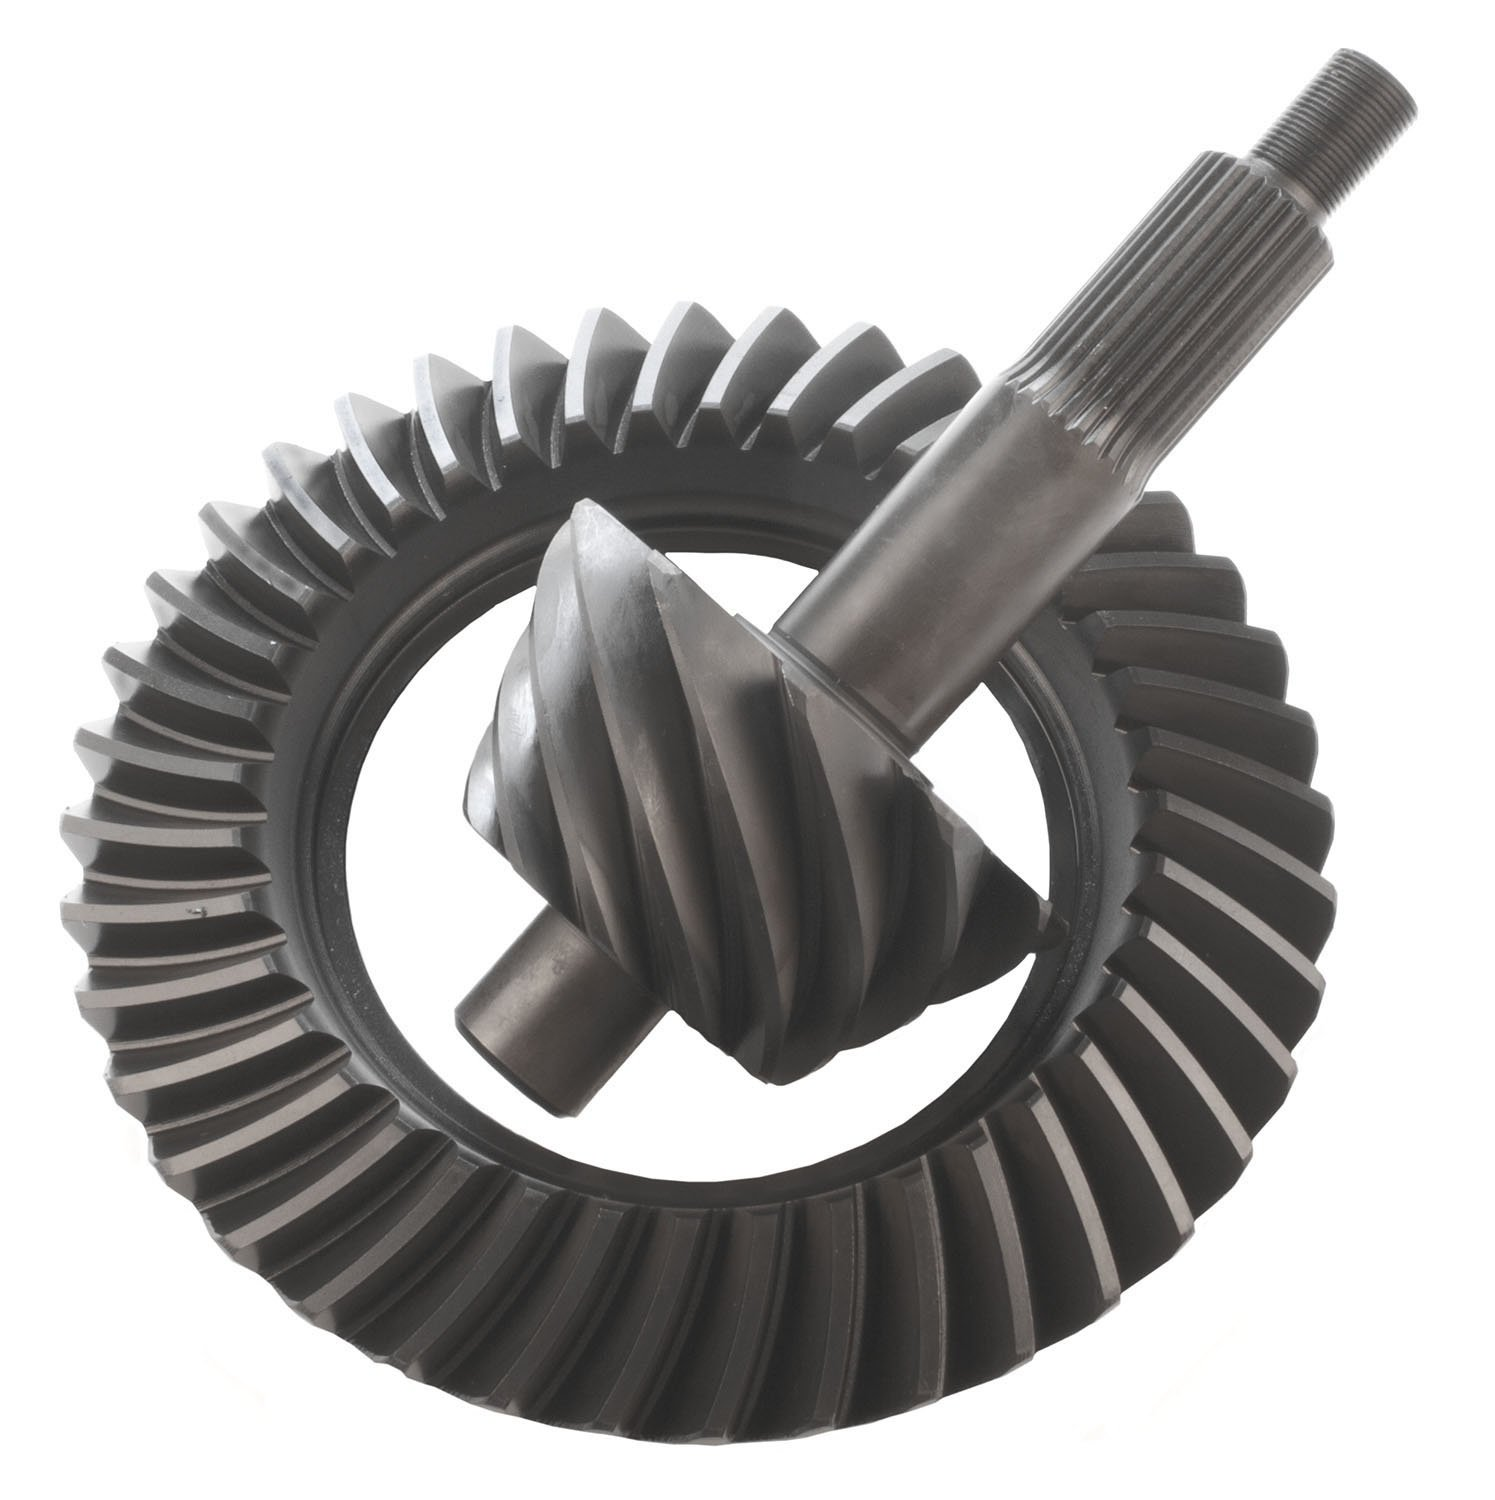 Richmond Gear 69-0361-1 Ring and Pinion Ford 9'' 3.70 Ring Ratio, 1 Pack